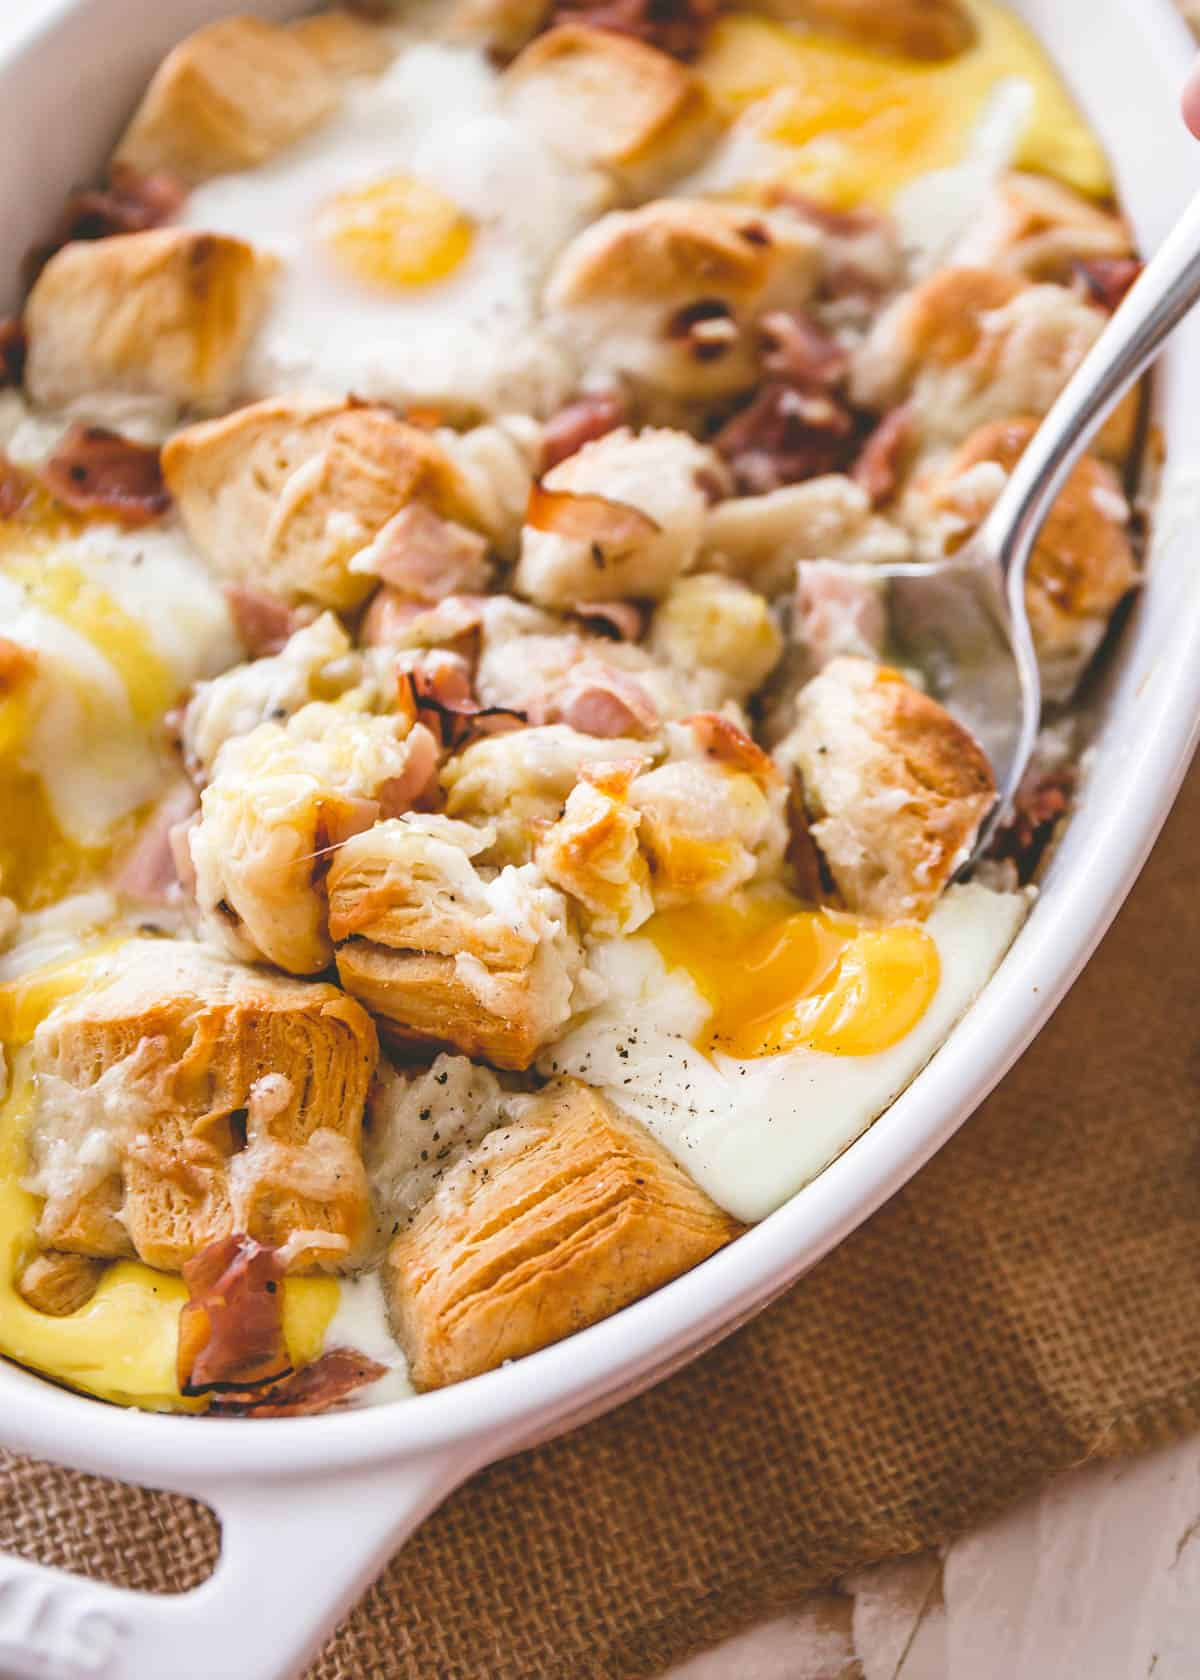 ham and cheese bake in a white baking dish